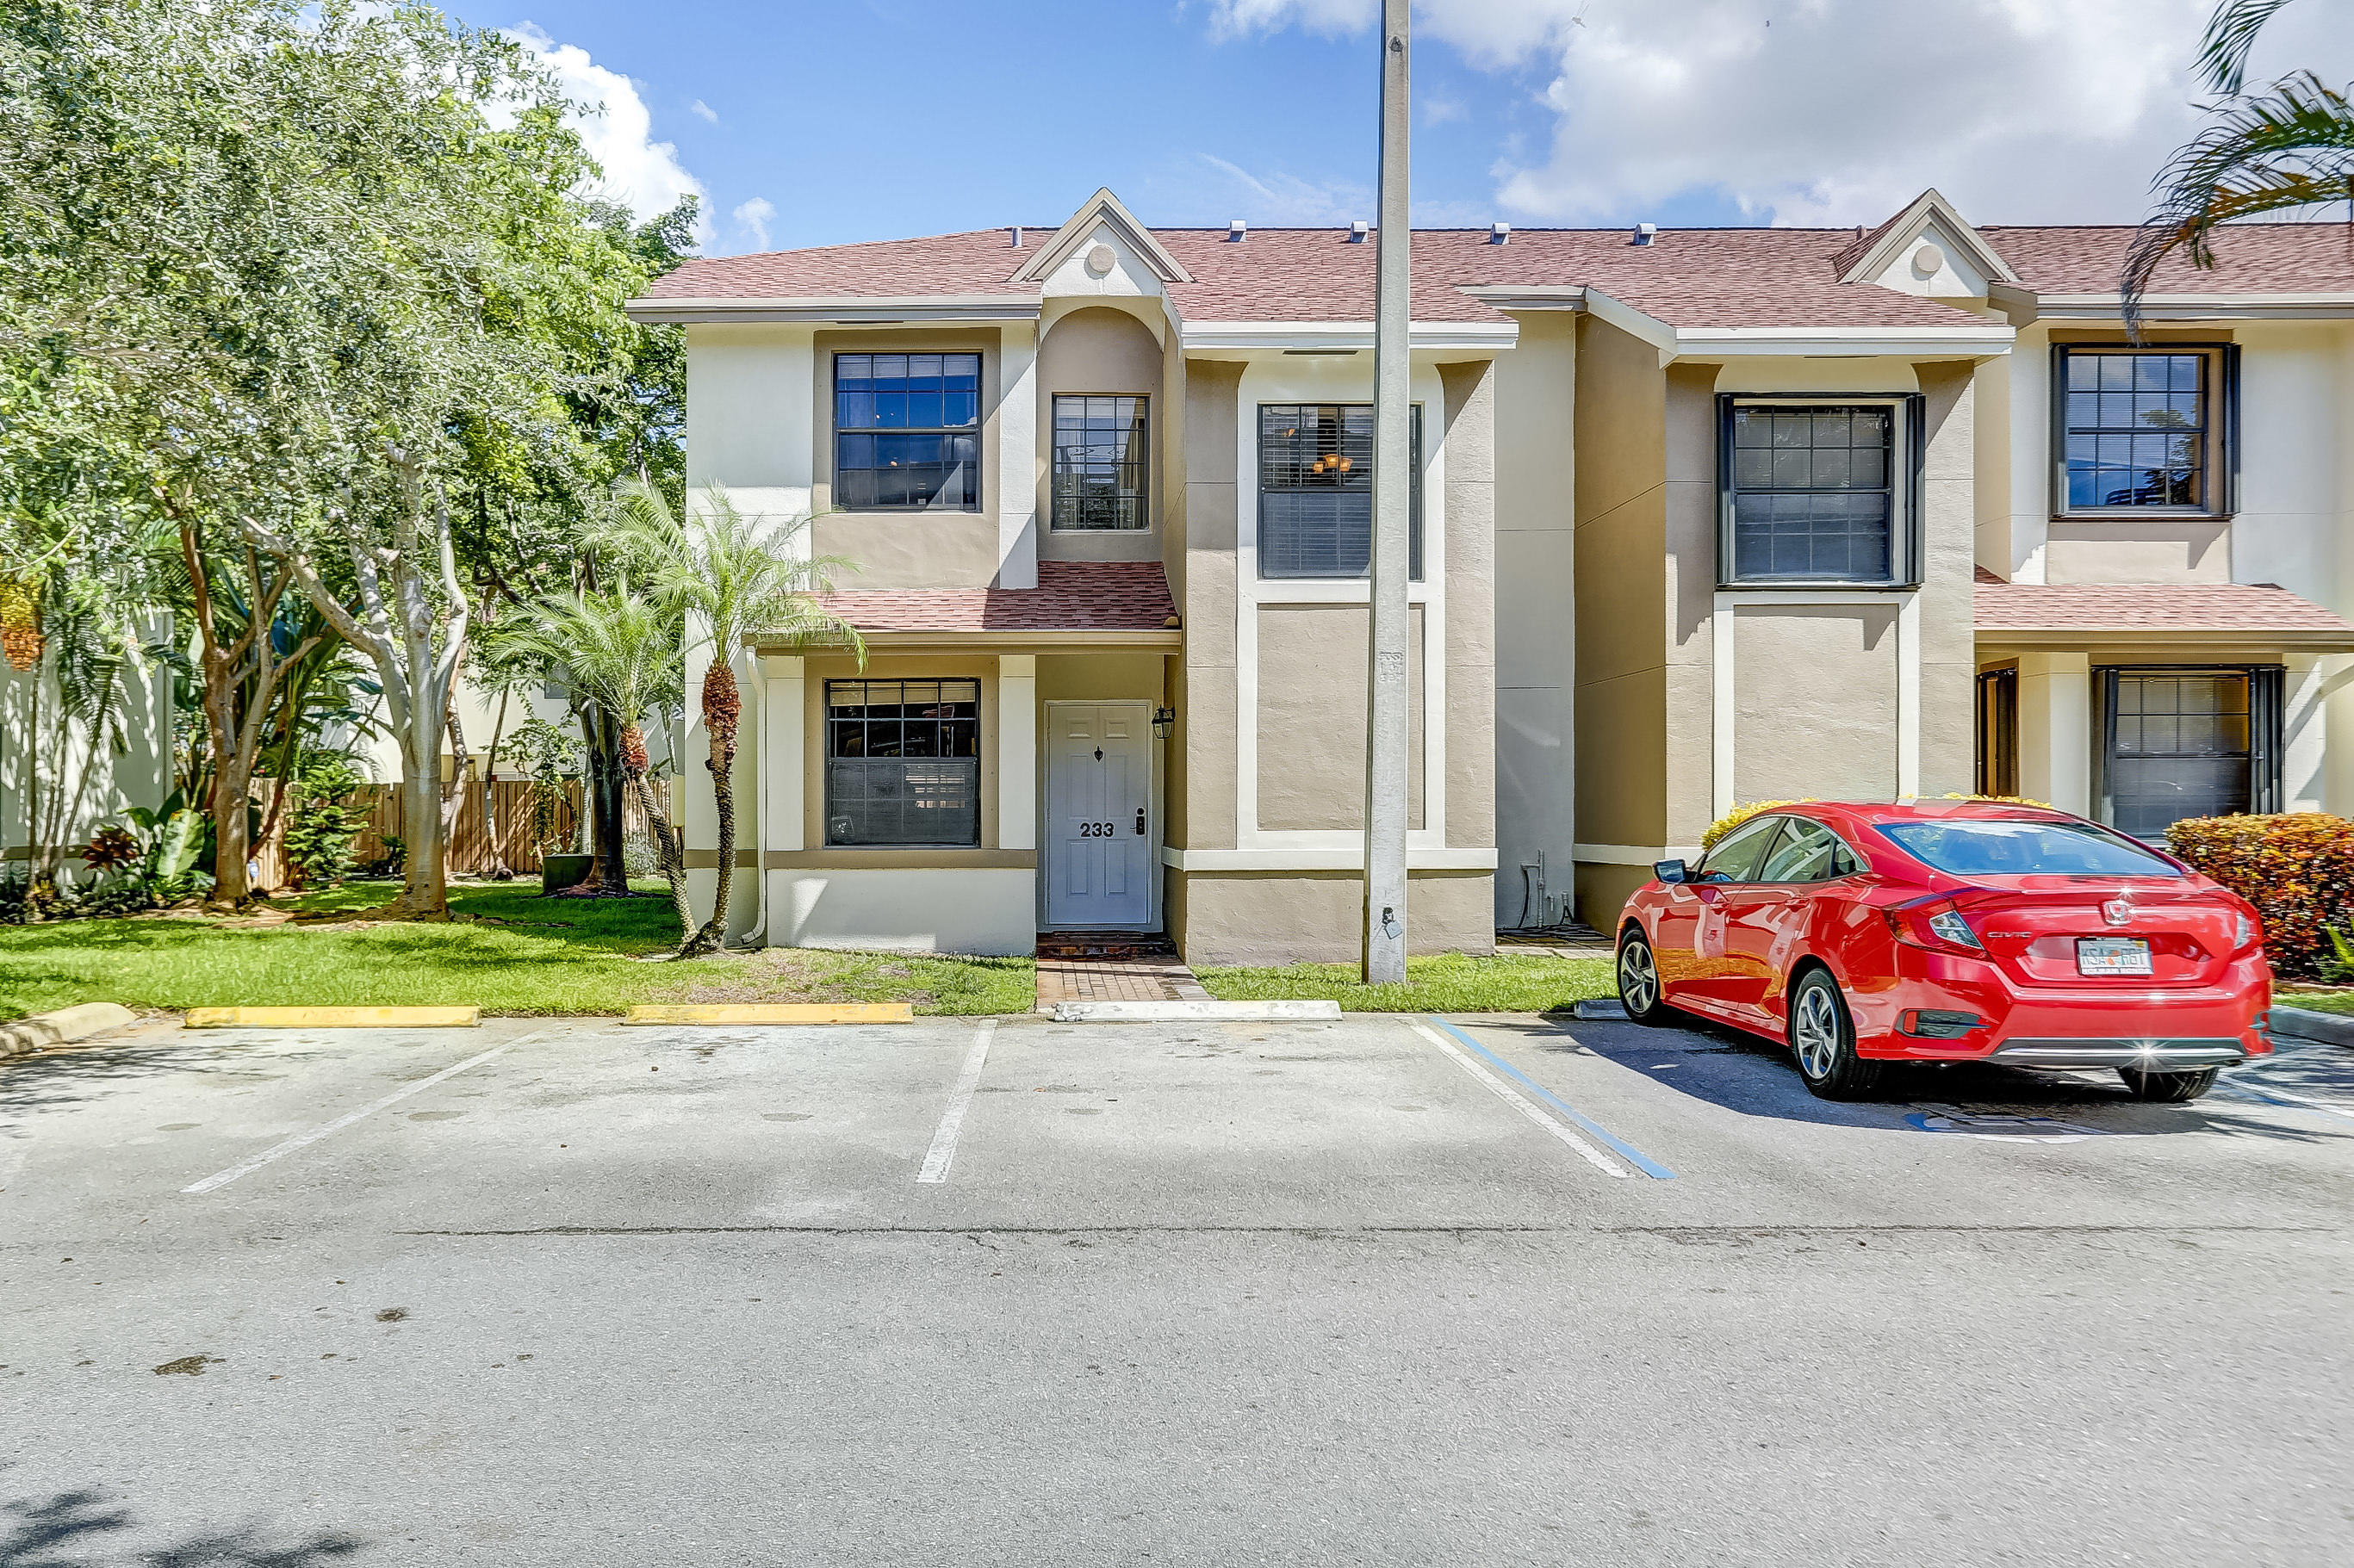 Home for sale in City View Fort Lauderdale Florida